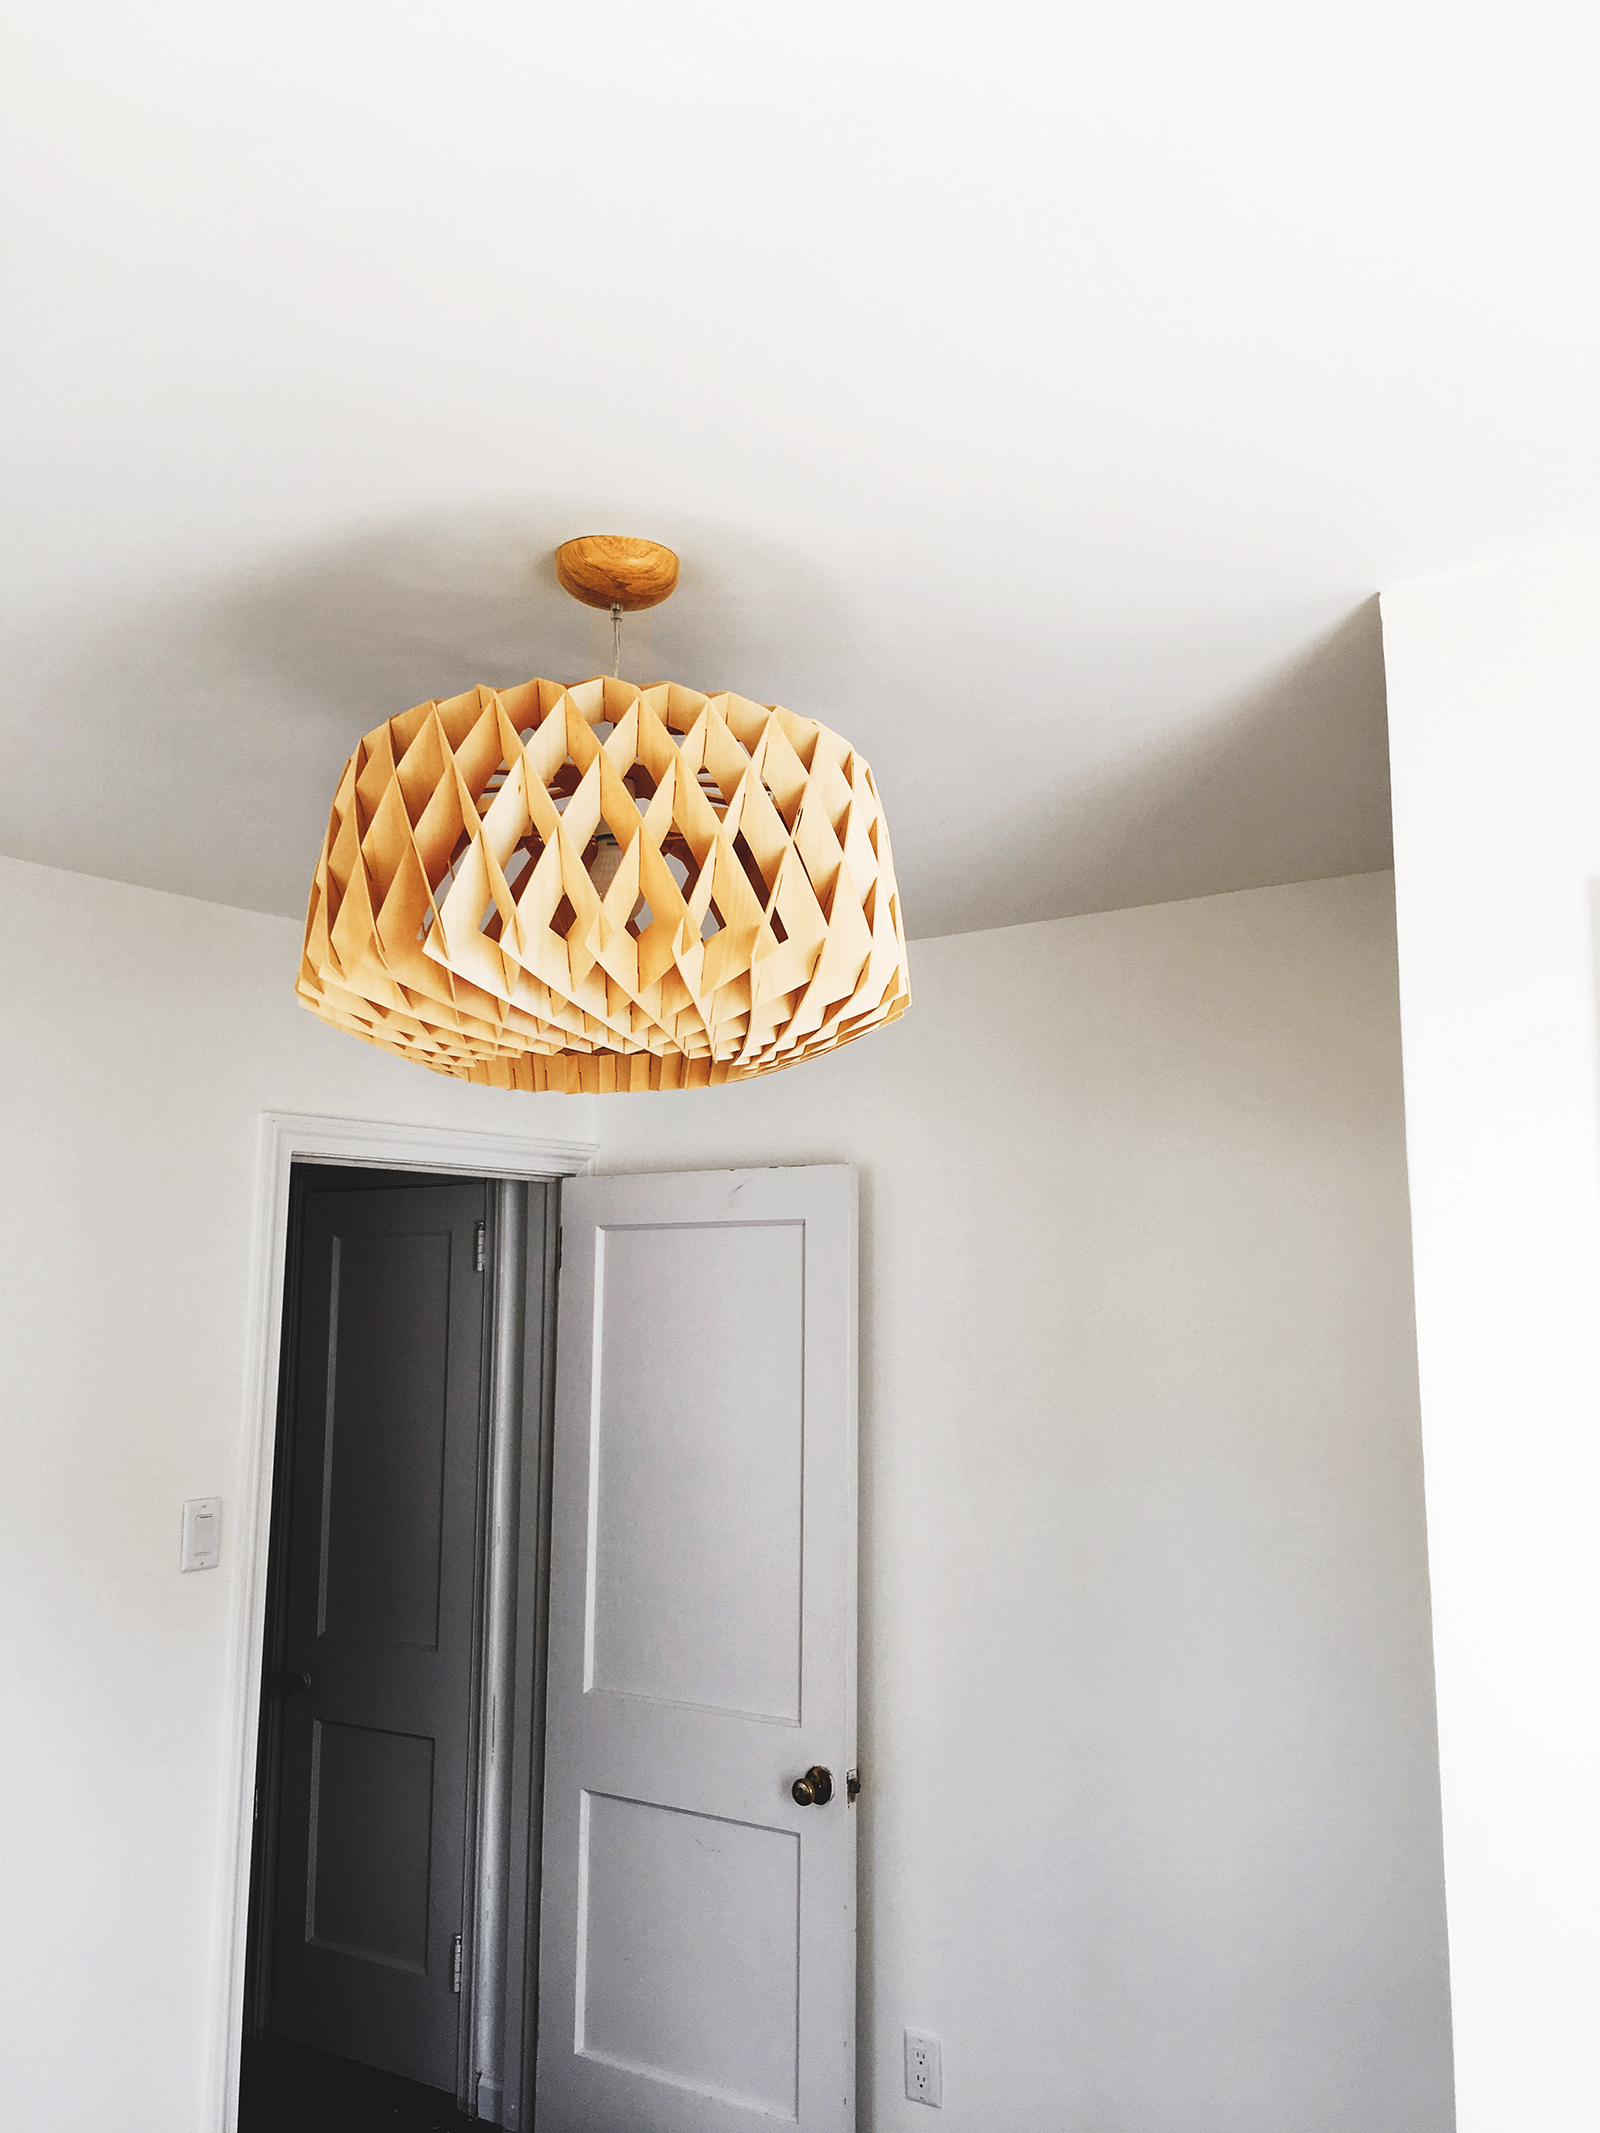 I'm beyond obsessed with this light fixture I found for the guest room. It's still available online  here .